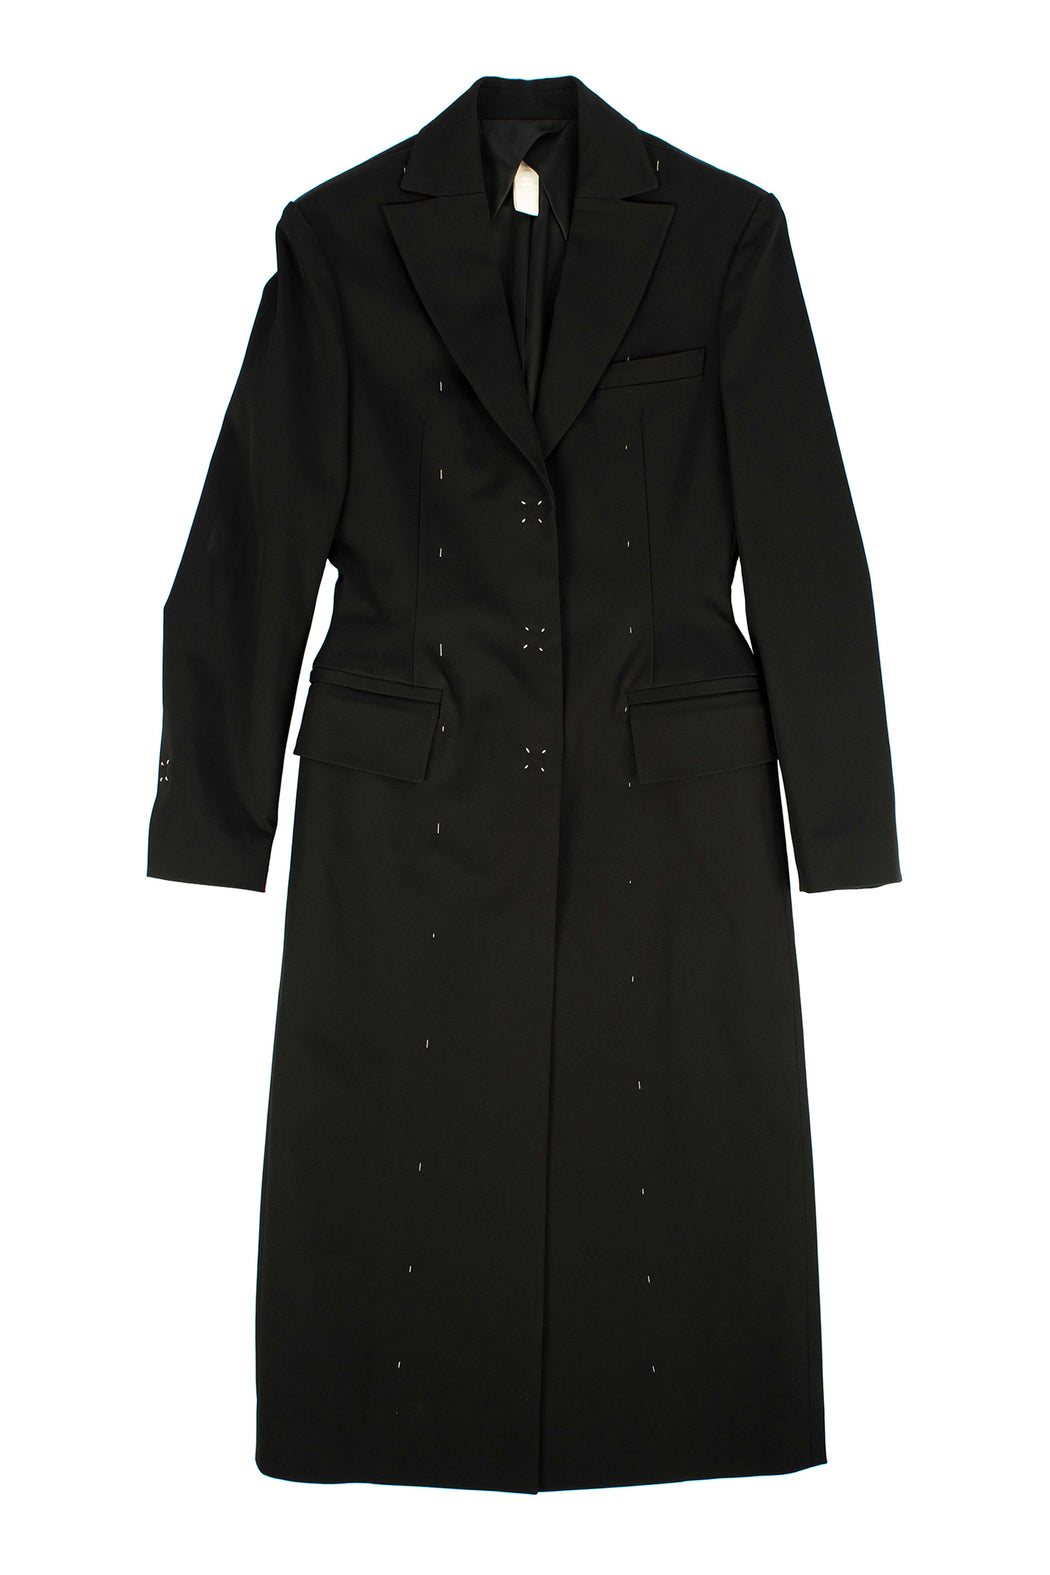 Vase Curve Line Stitching Snap Button Coat - Black